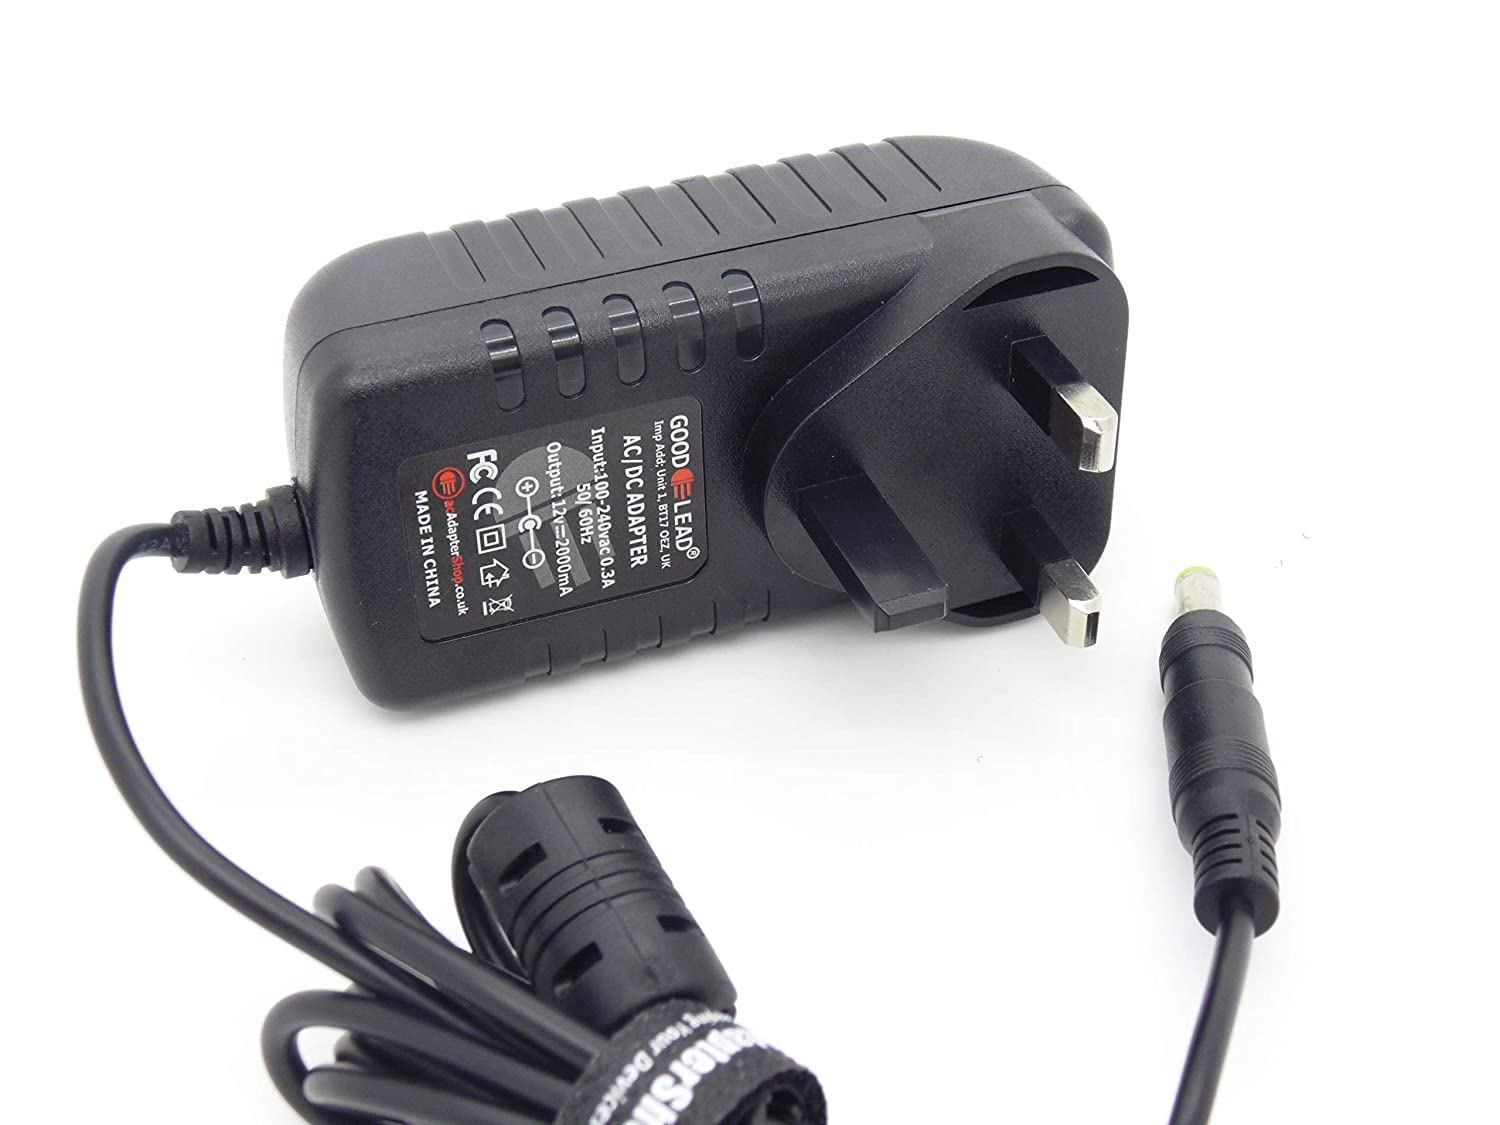 GOOD LEAD Motorola Xoom MZ602 MZ604 MZ606 Compatible Tablet Power Supply Adapter new NEW